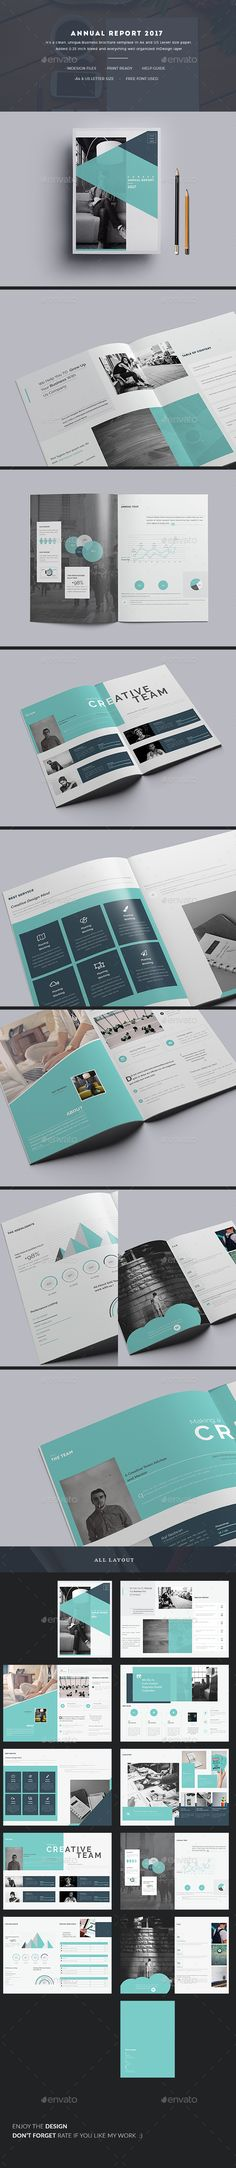 Annual Report 2017 Brochure — InDesign INDD #business #clean. multipurpose • Download ➝ https://graphicriver.net/item/annual-report-2017-brochure/19415627?ref=pxcr